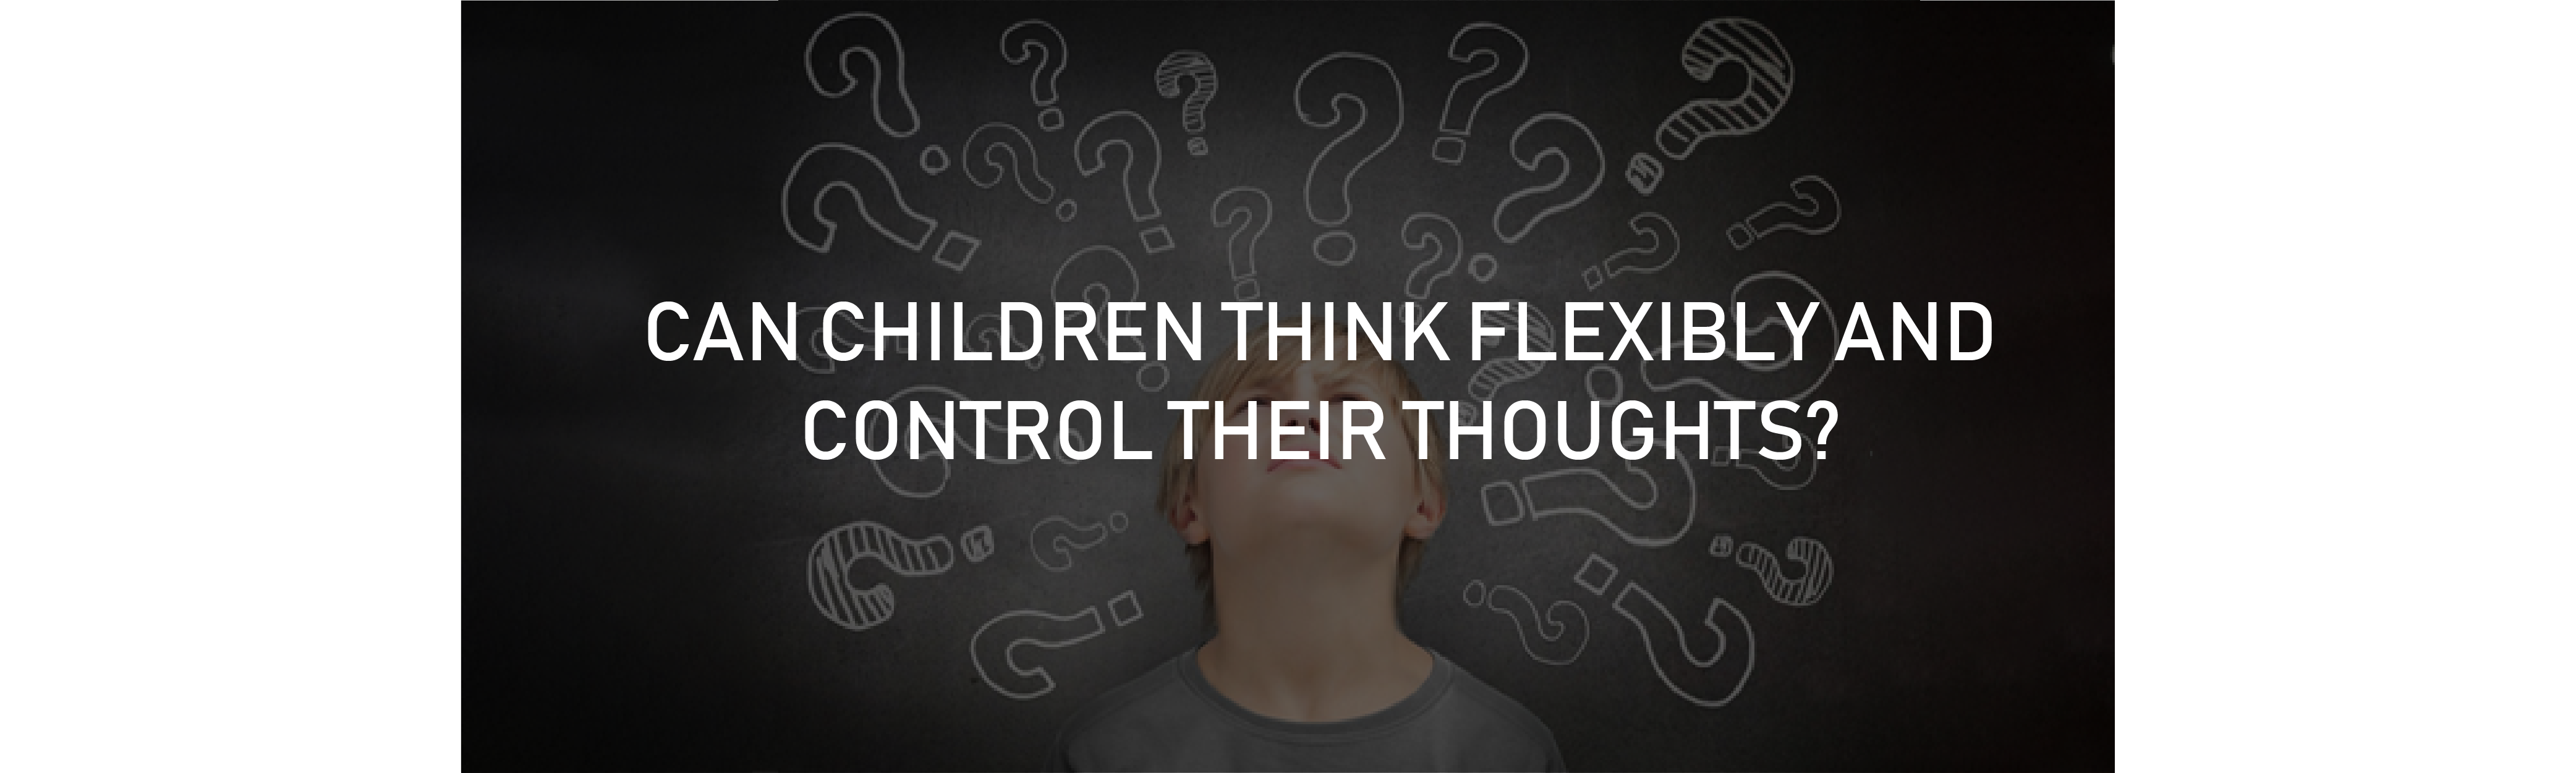 Cognitive Flexibility in Children